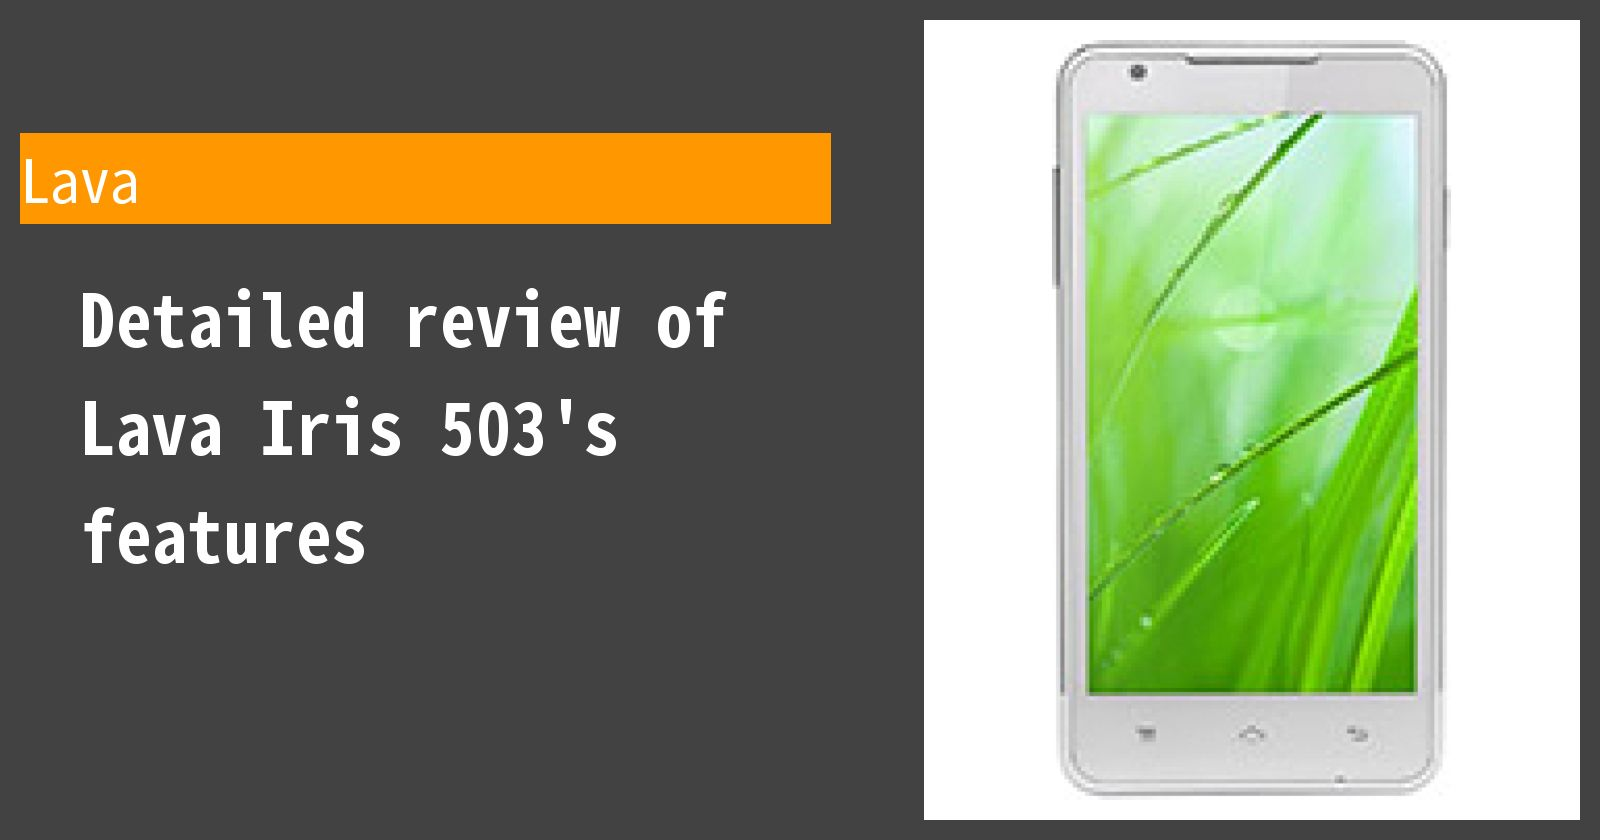 Detailed review of Lava Iris 503's features